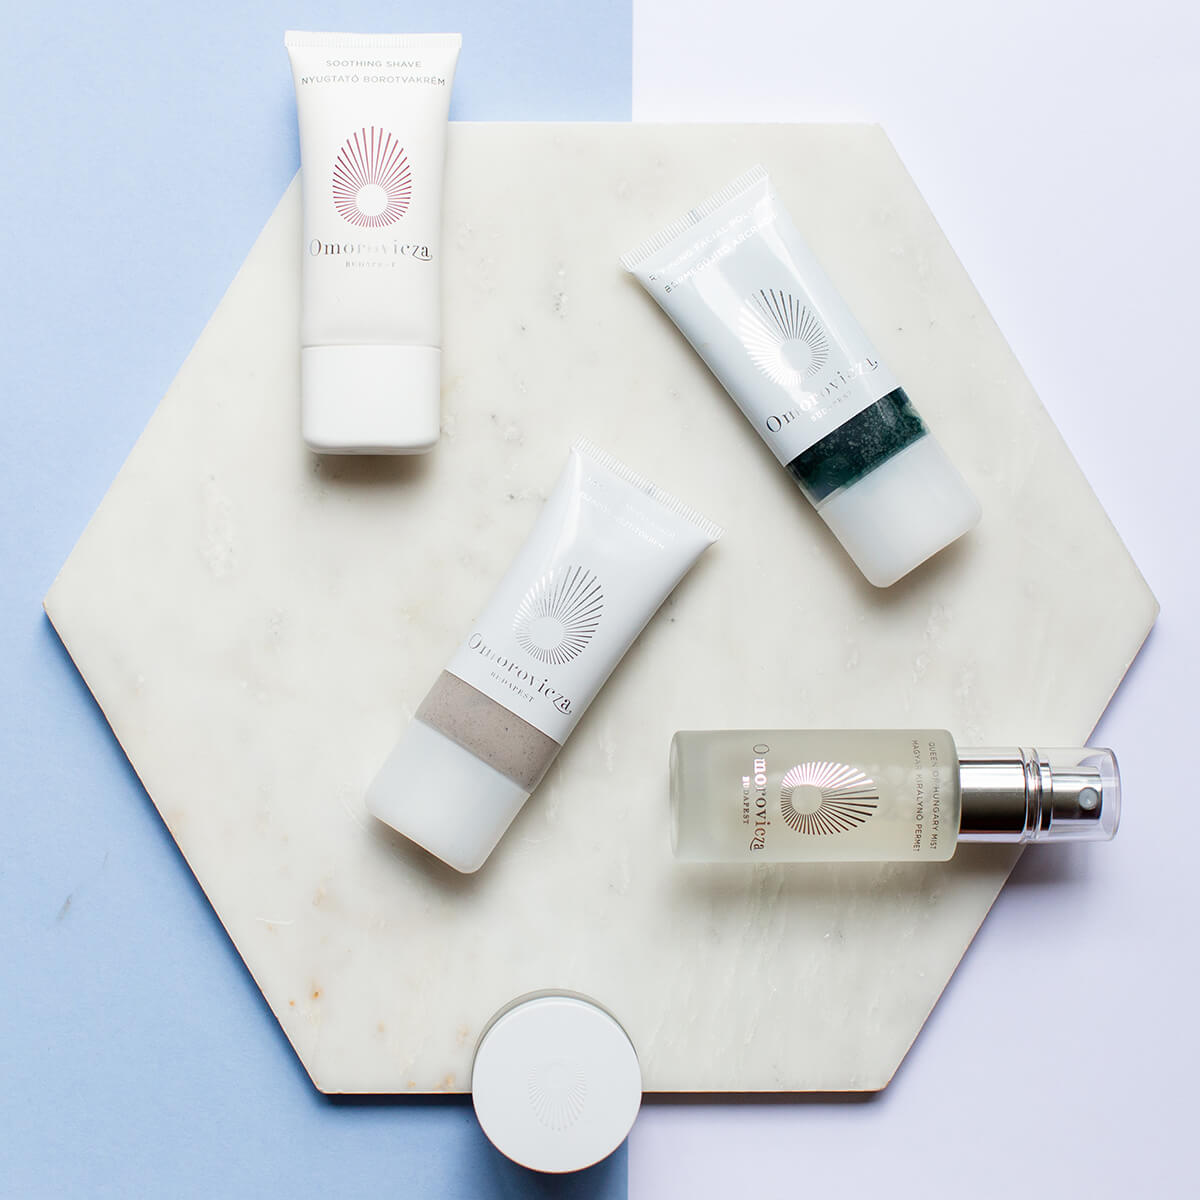 Omorovicza mini products, queen of hungary mist, soothing shave, refining facial polisher